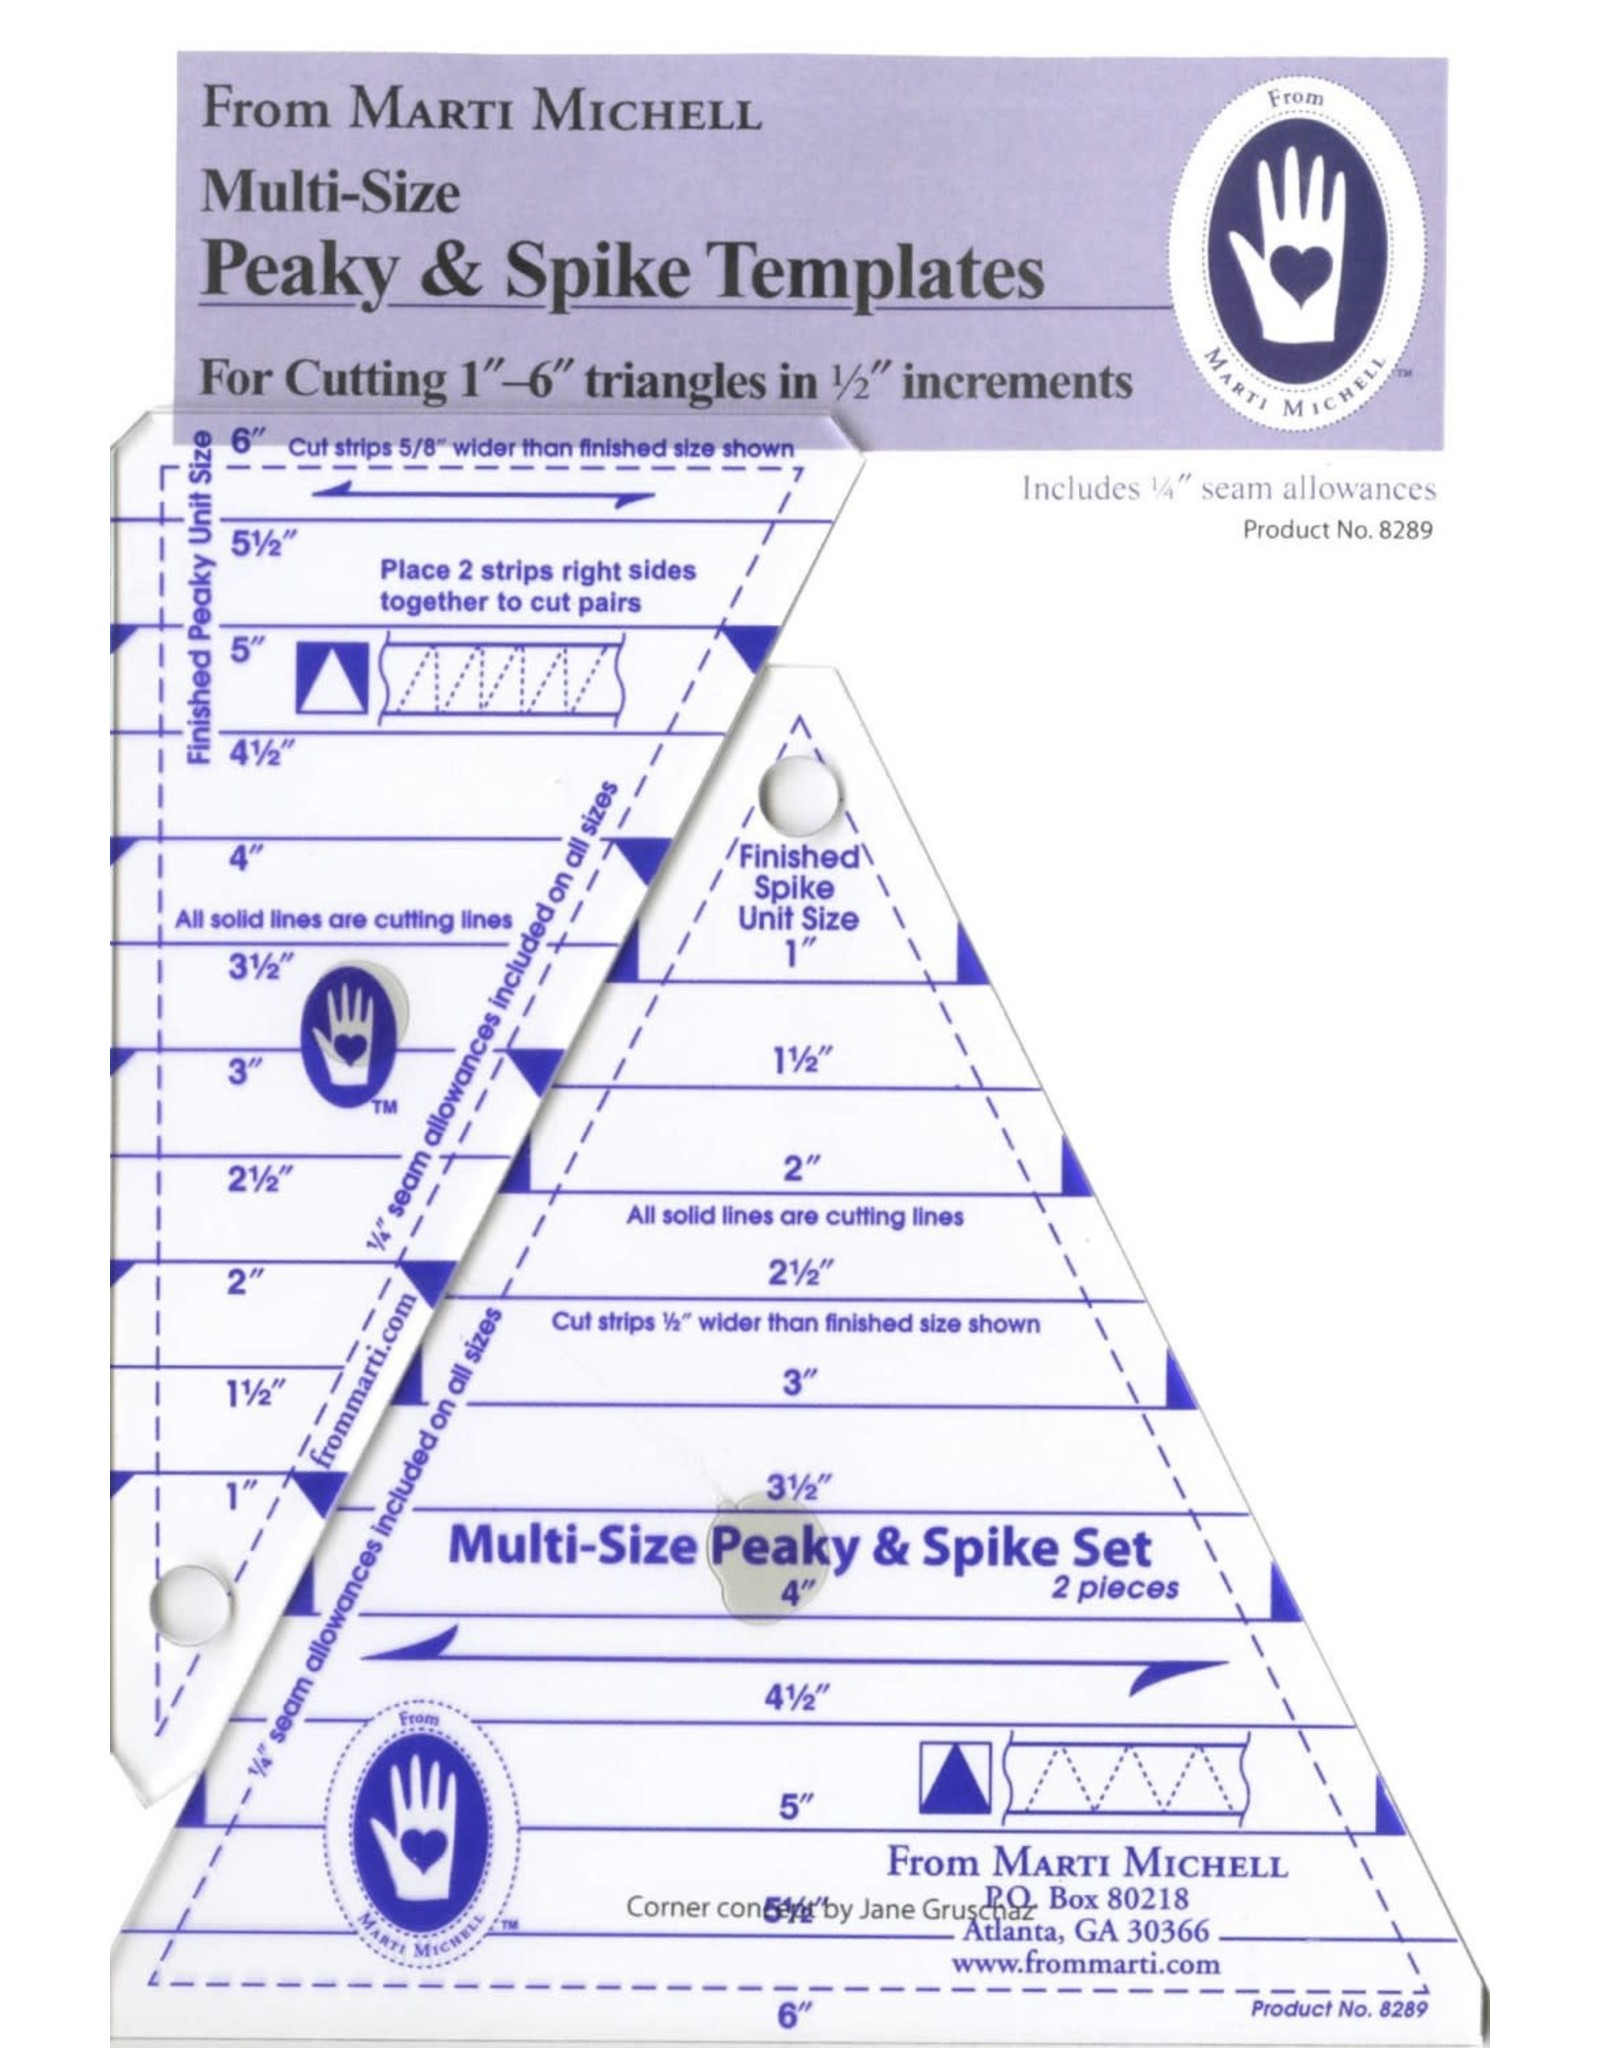 Peaky & Spike Set - Multi-Size - 1 to 6 inch